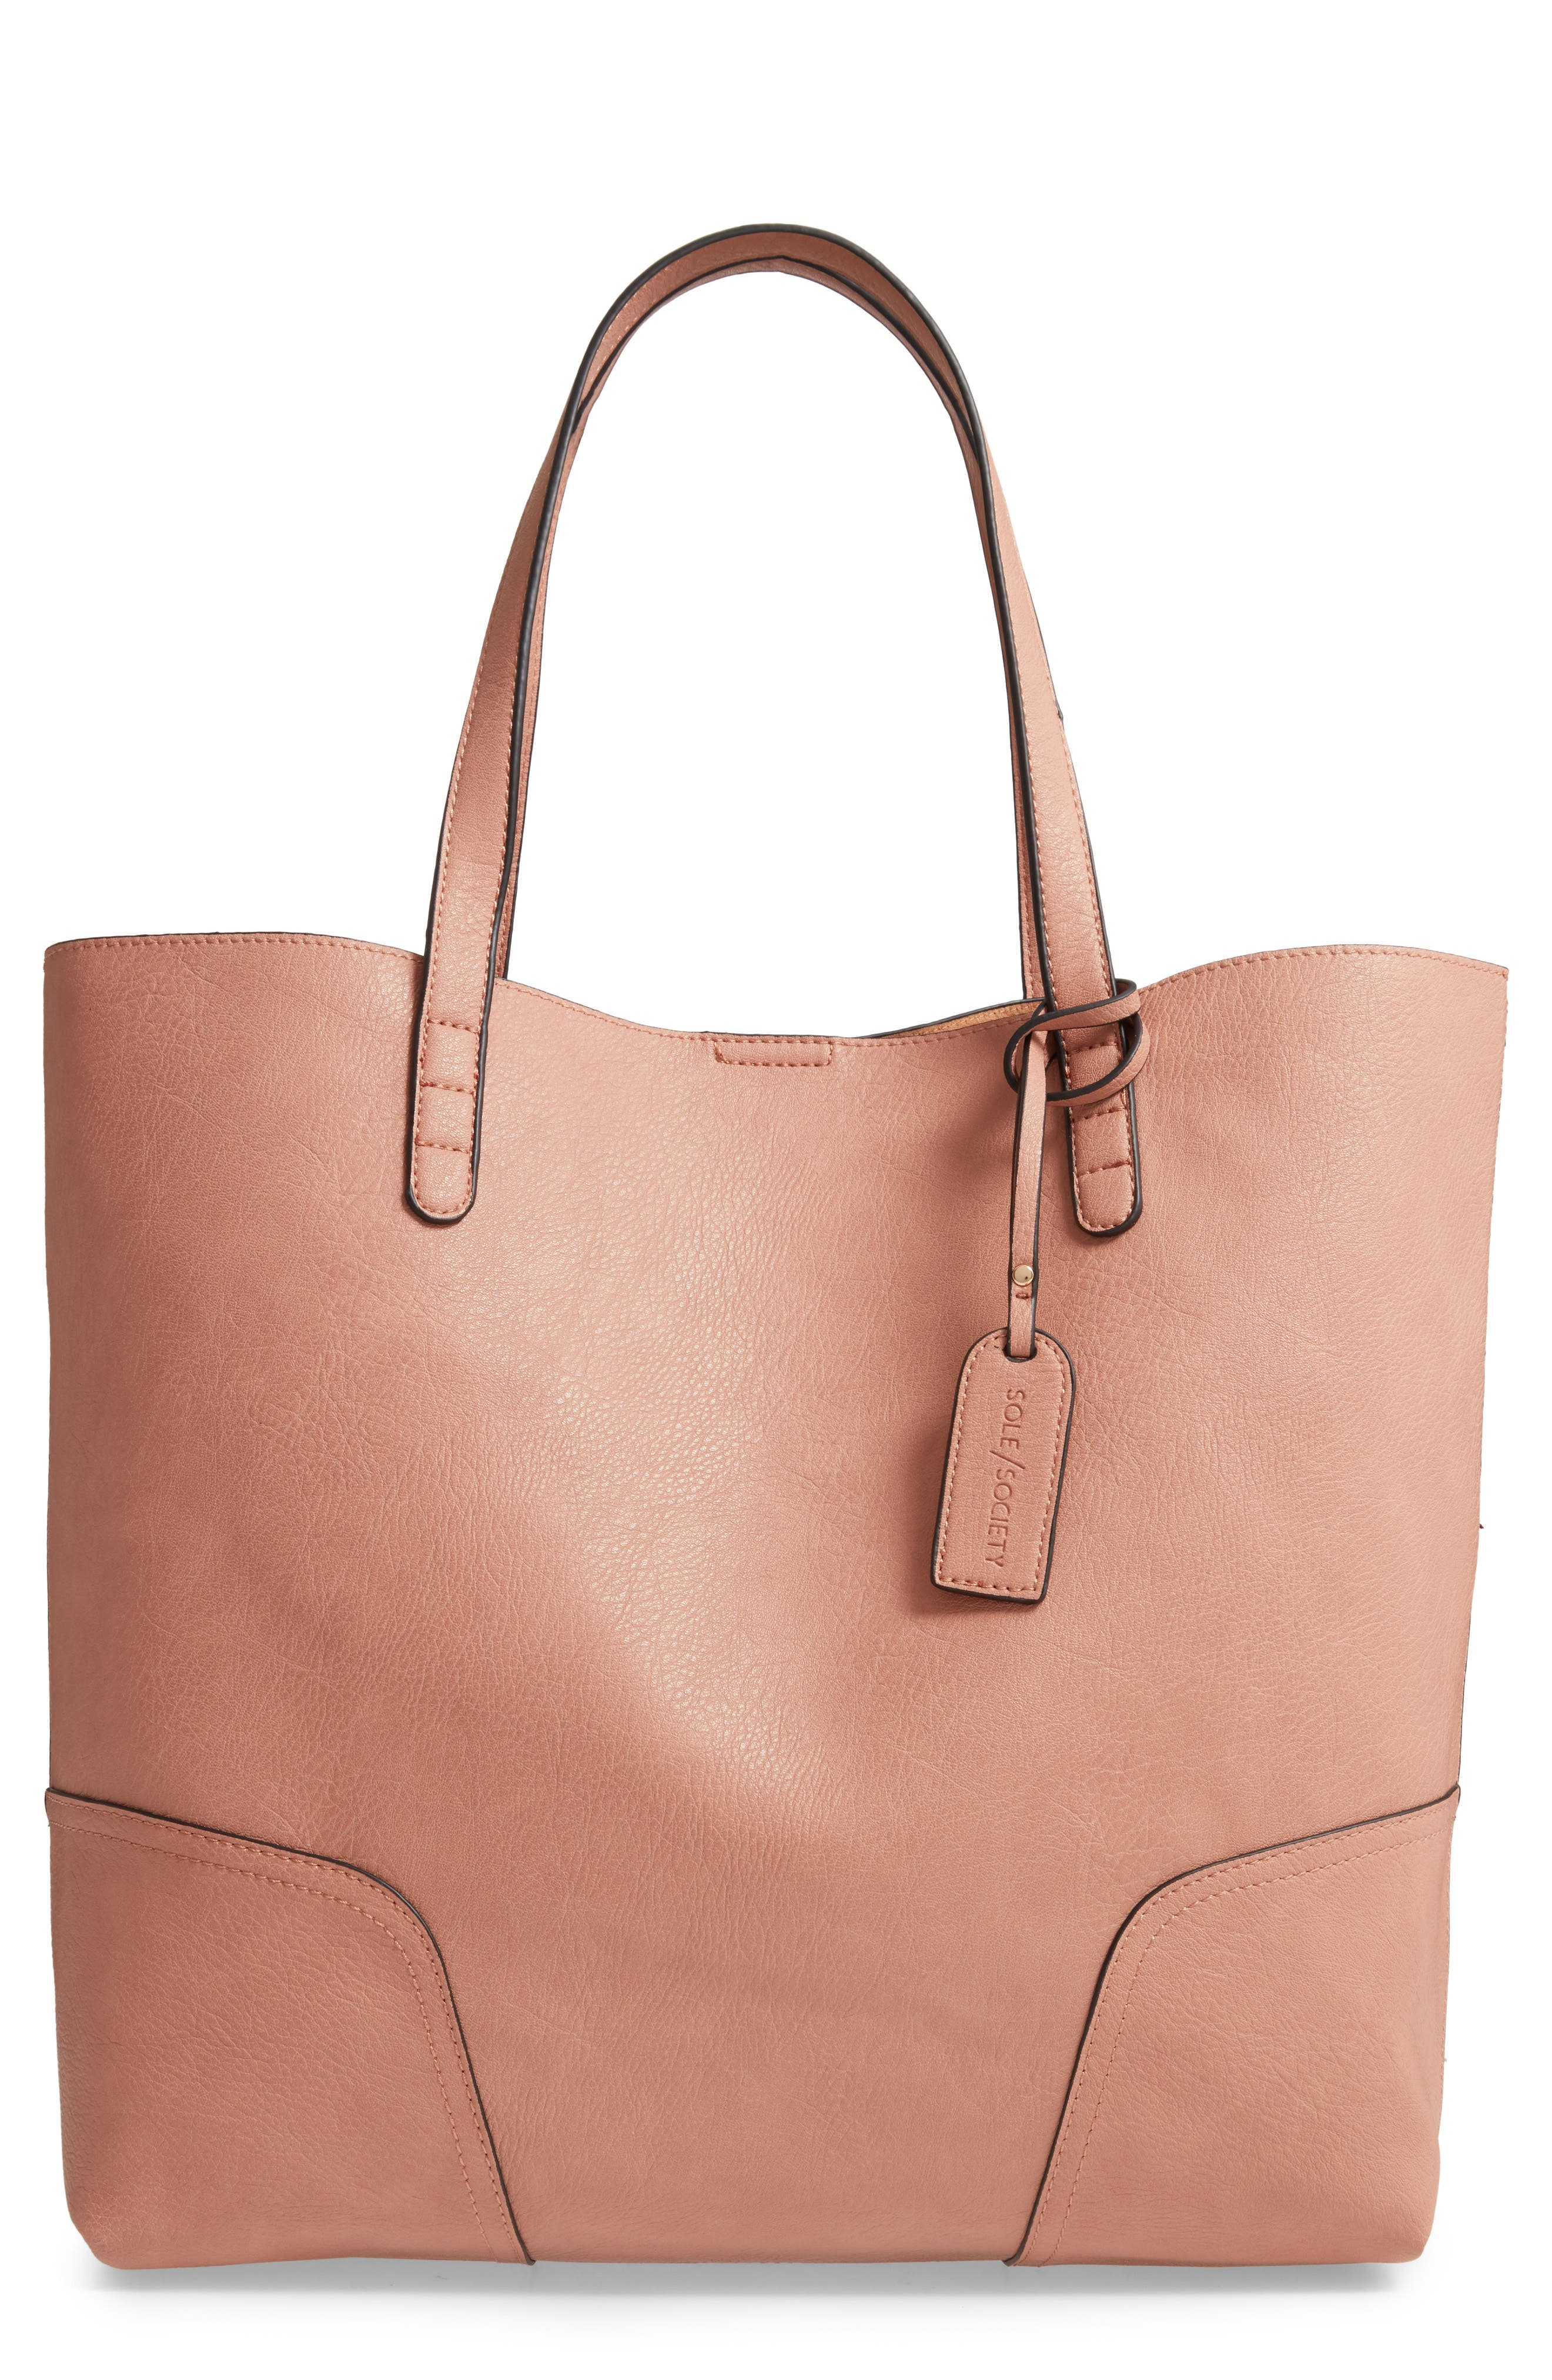 SOLE SOCIETY Lilyn Faux Leather Tote, Main, color, CANYON